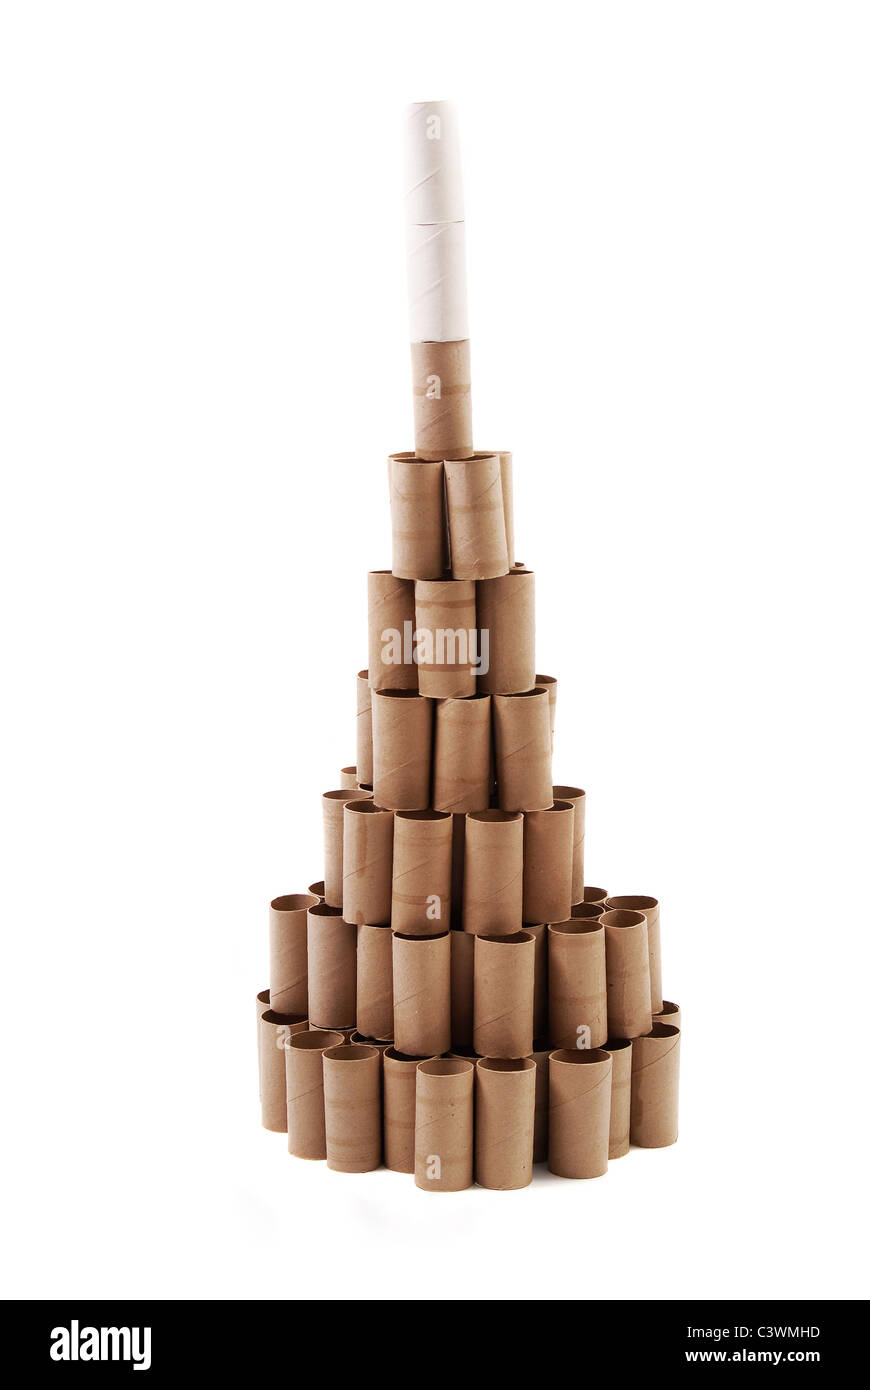 Christmas Tree made with cardboard rolls of toilet paper ...